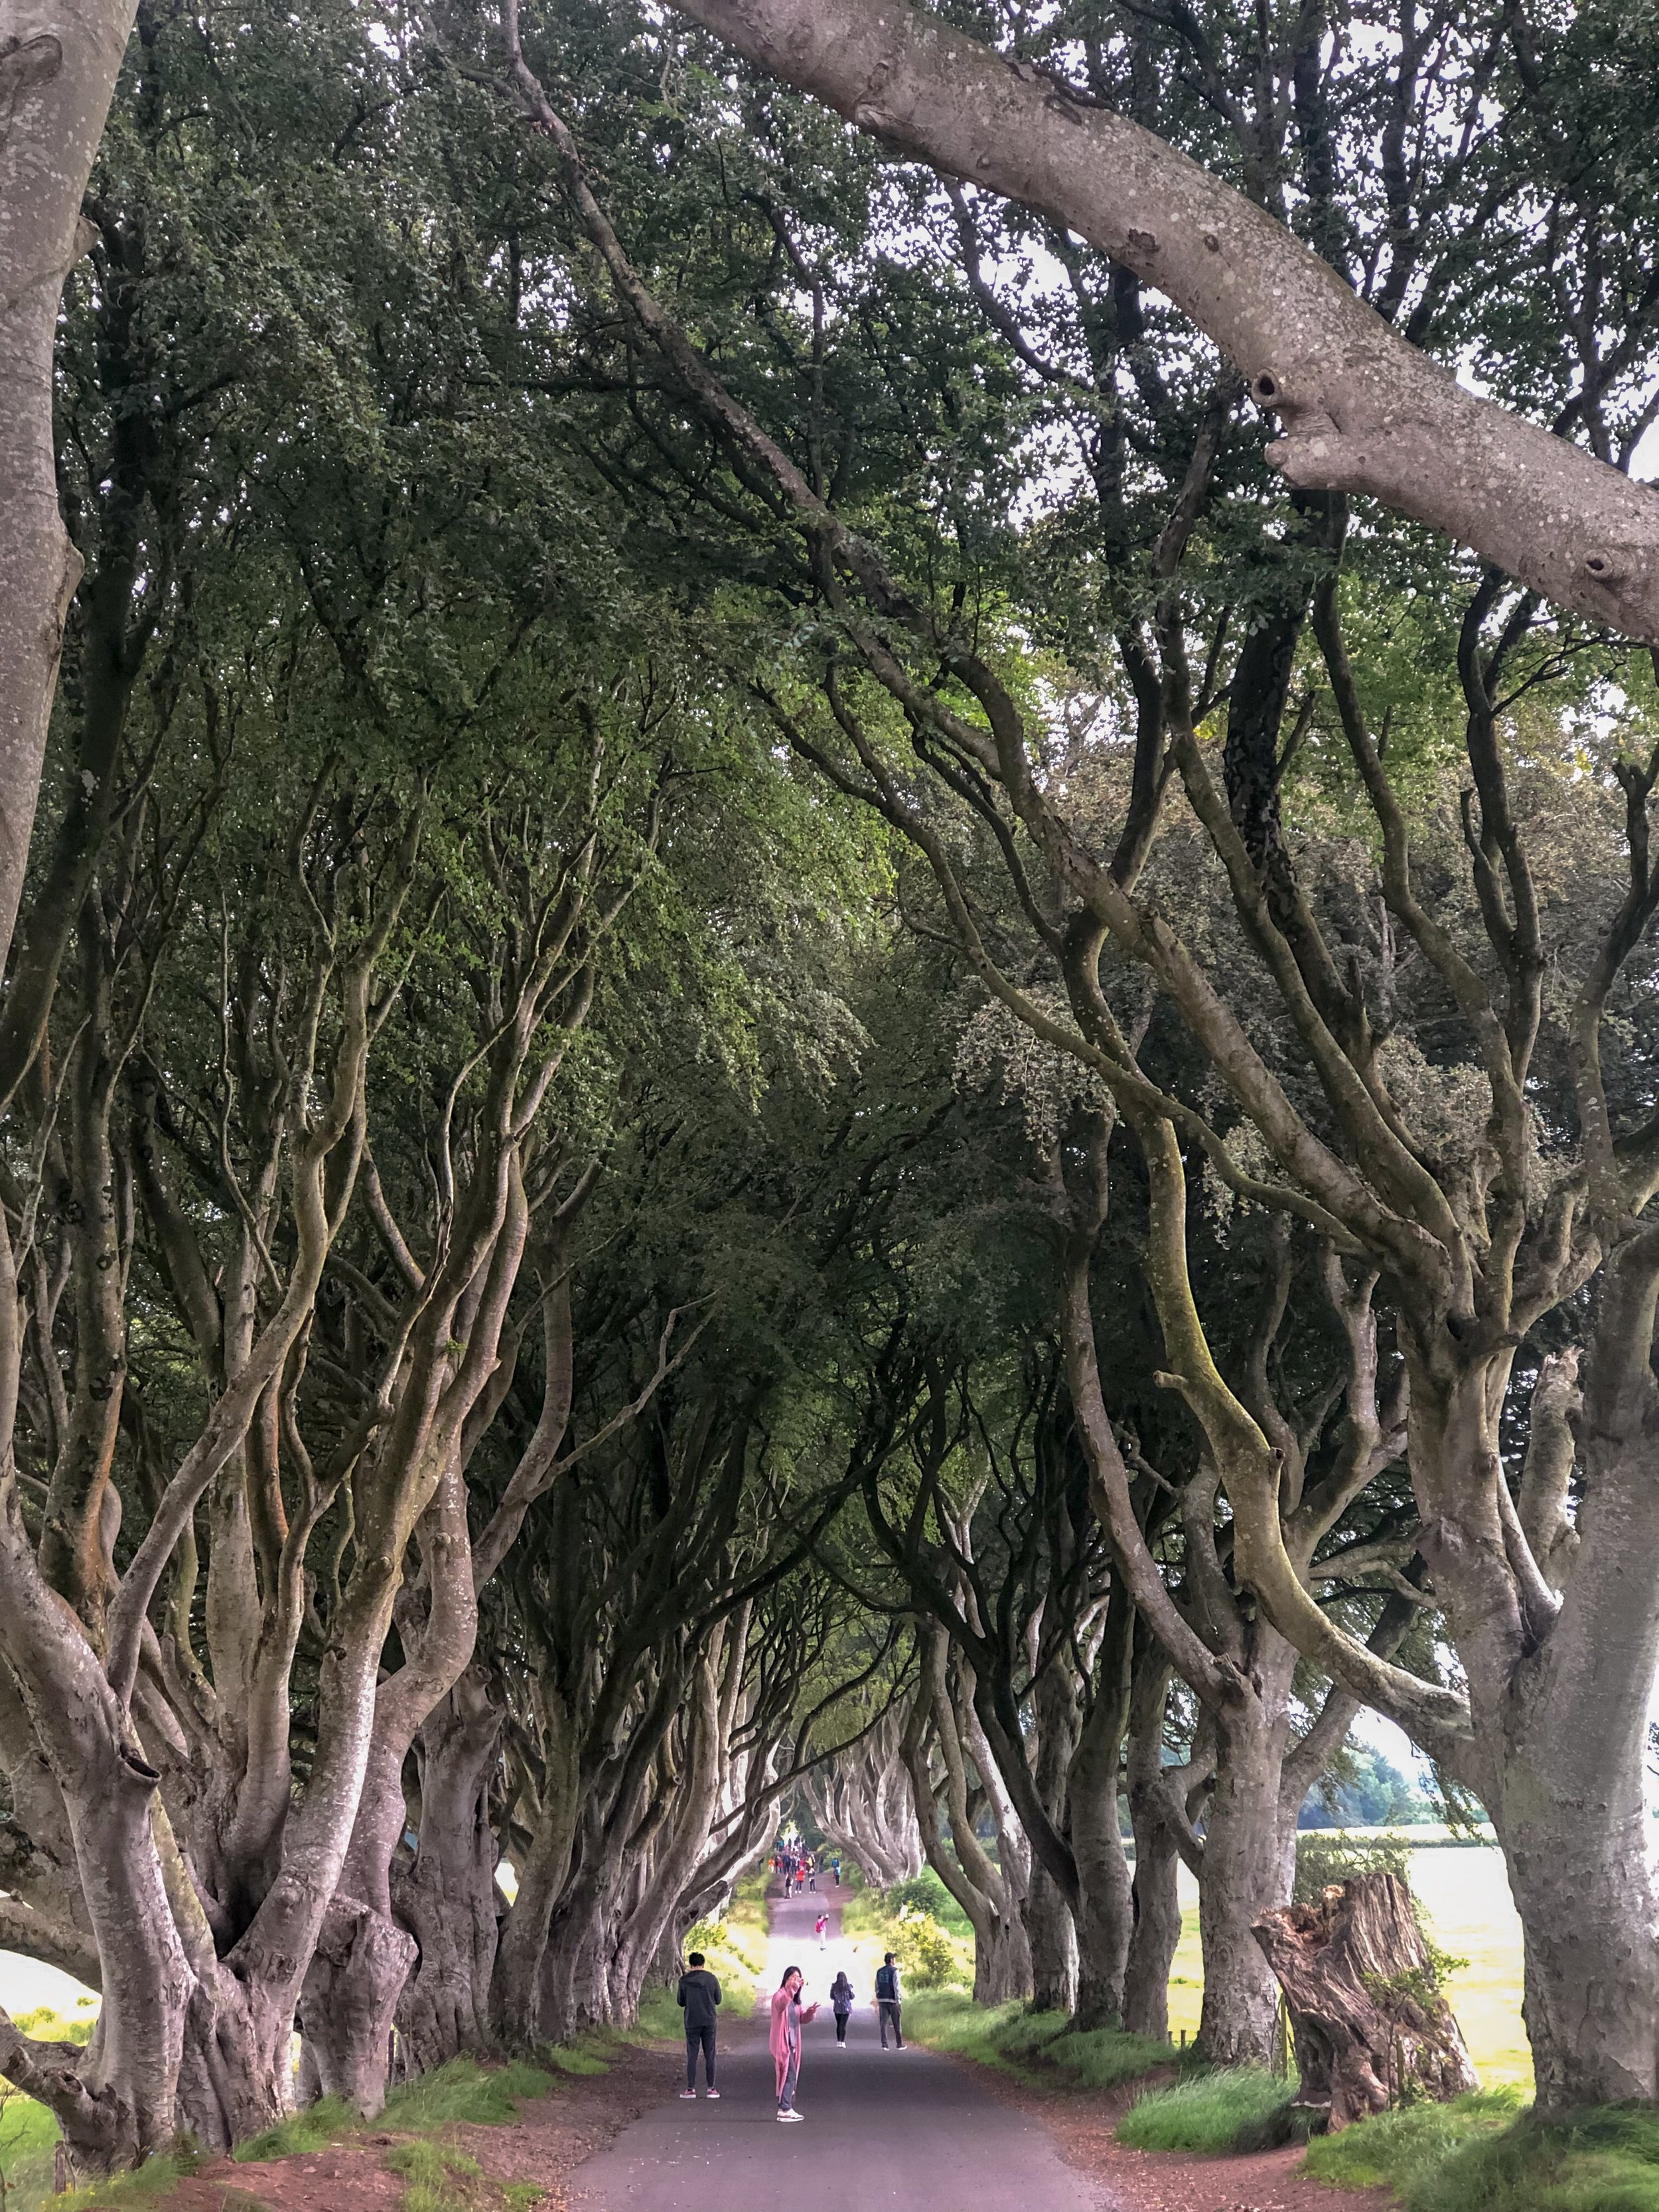 The Dark Hedges from GoT.